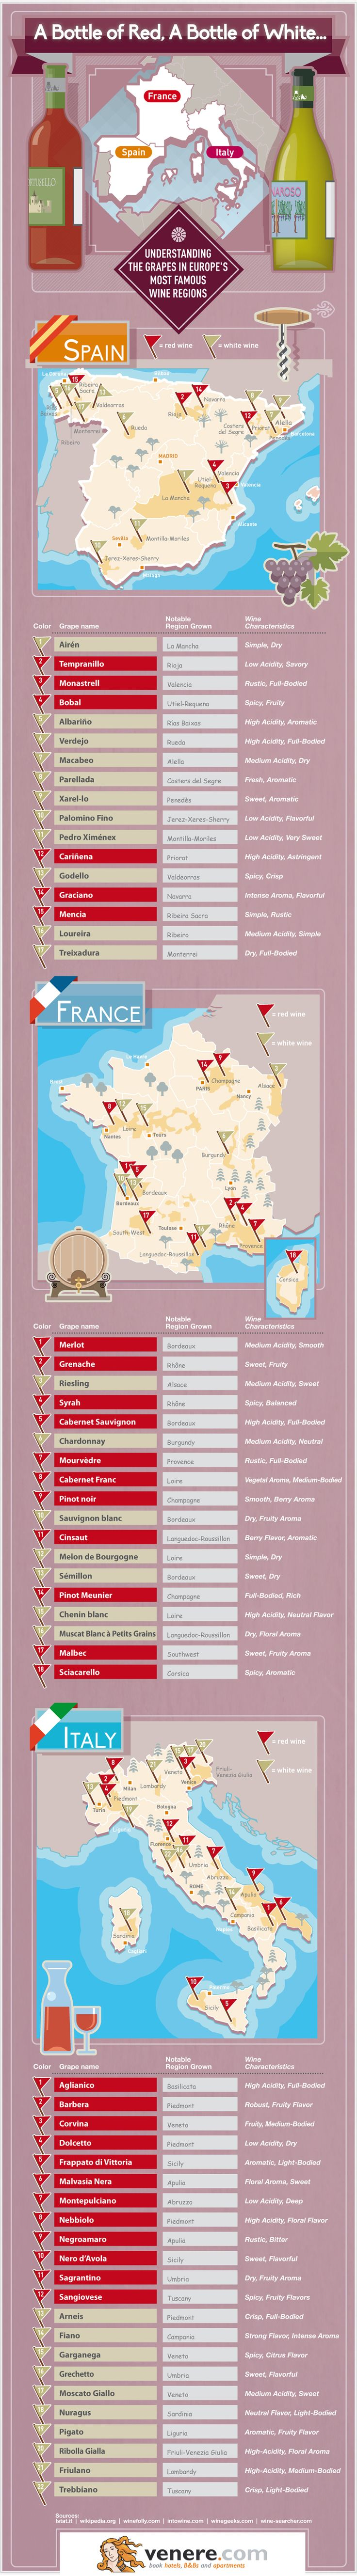 Understanding the grapes in europe´s most famous wine regions #wine #wineoclock #winetime